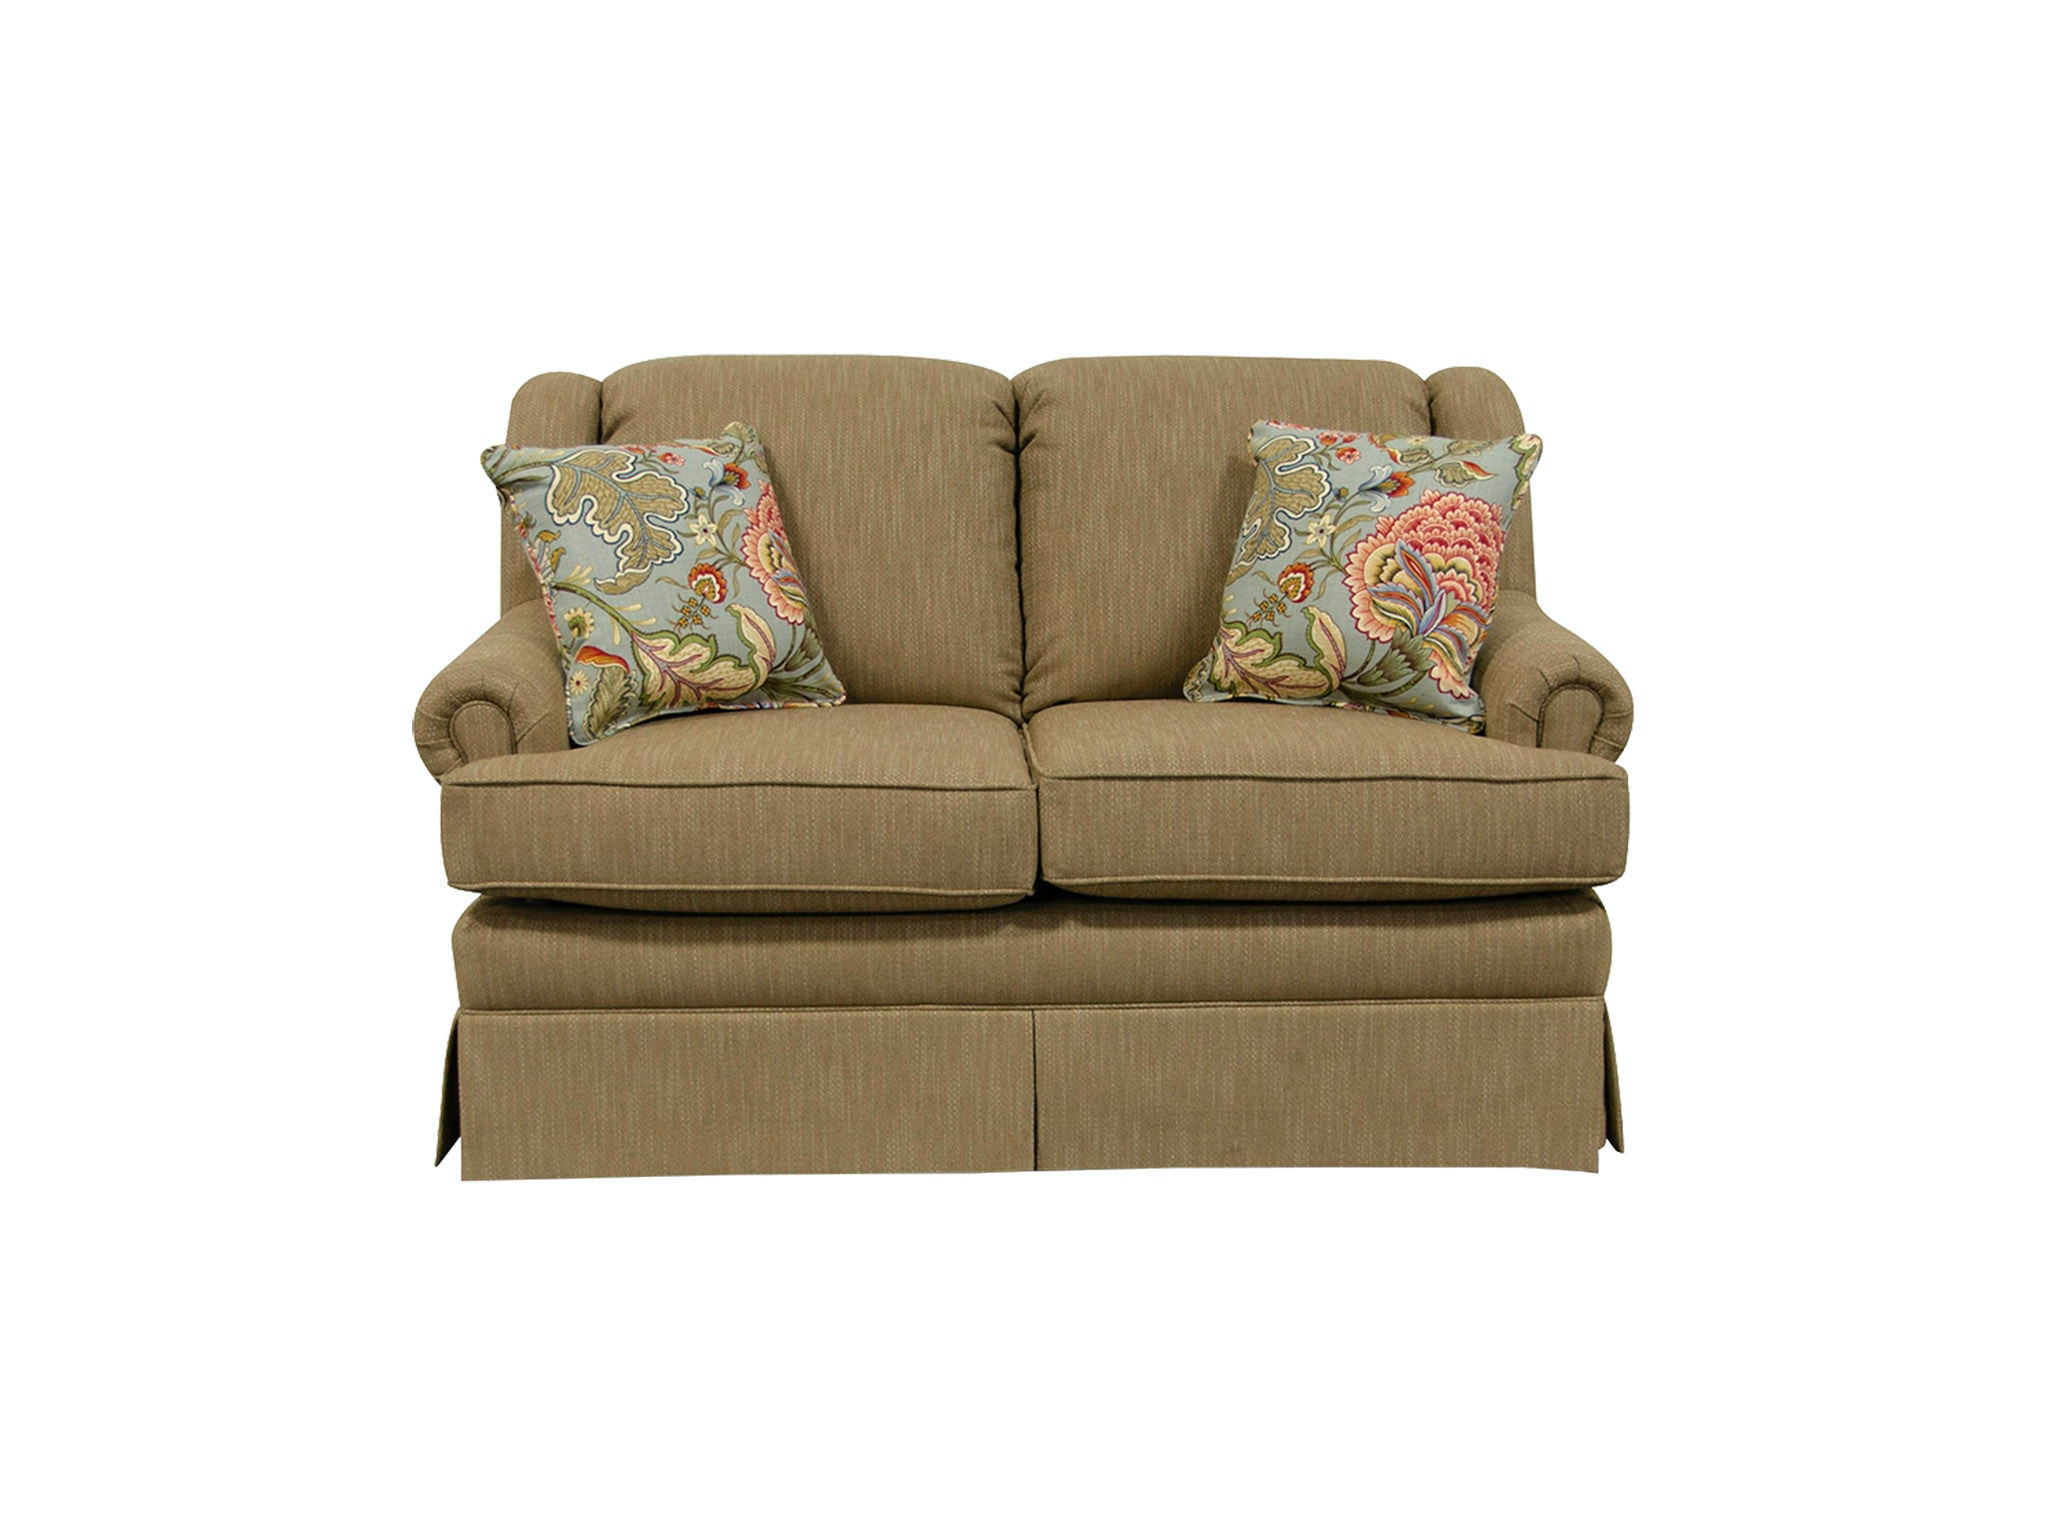 England Living Room Rochelle Sofa 4005 England Furniture